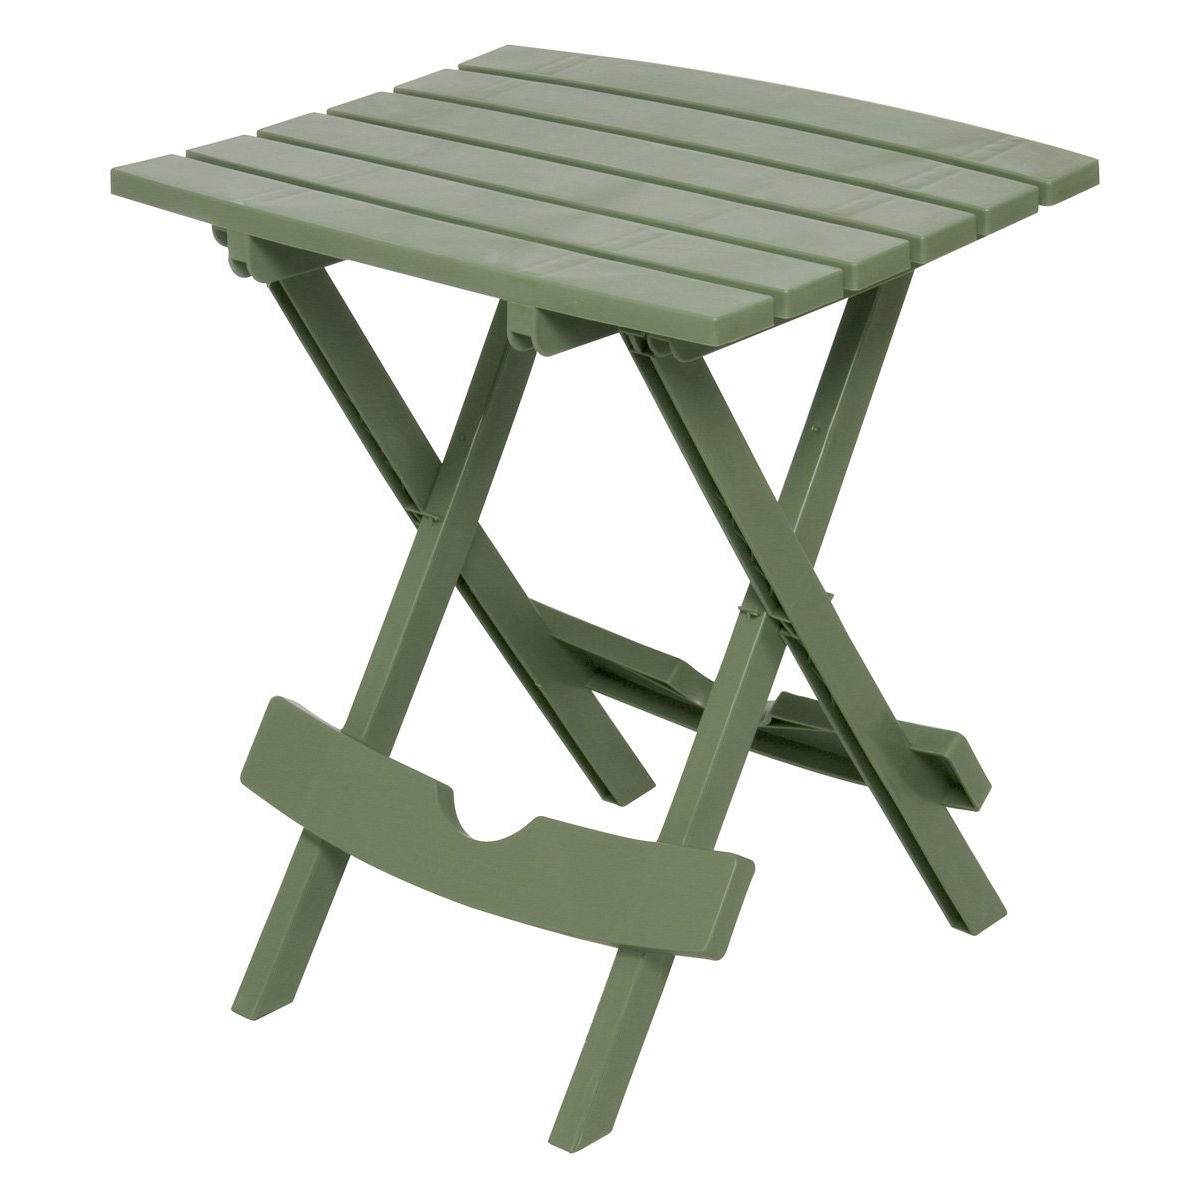 Sage Green Patio Side Table   Holds Up To 25 Pounds